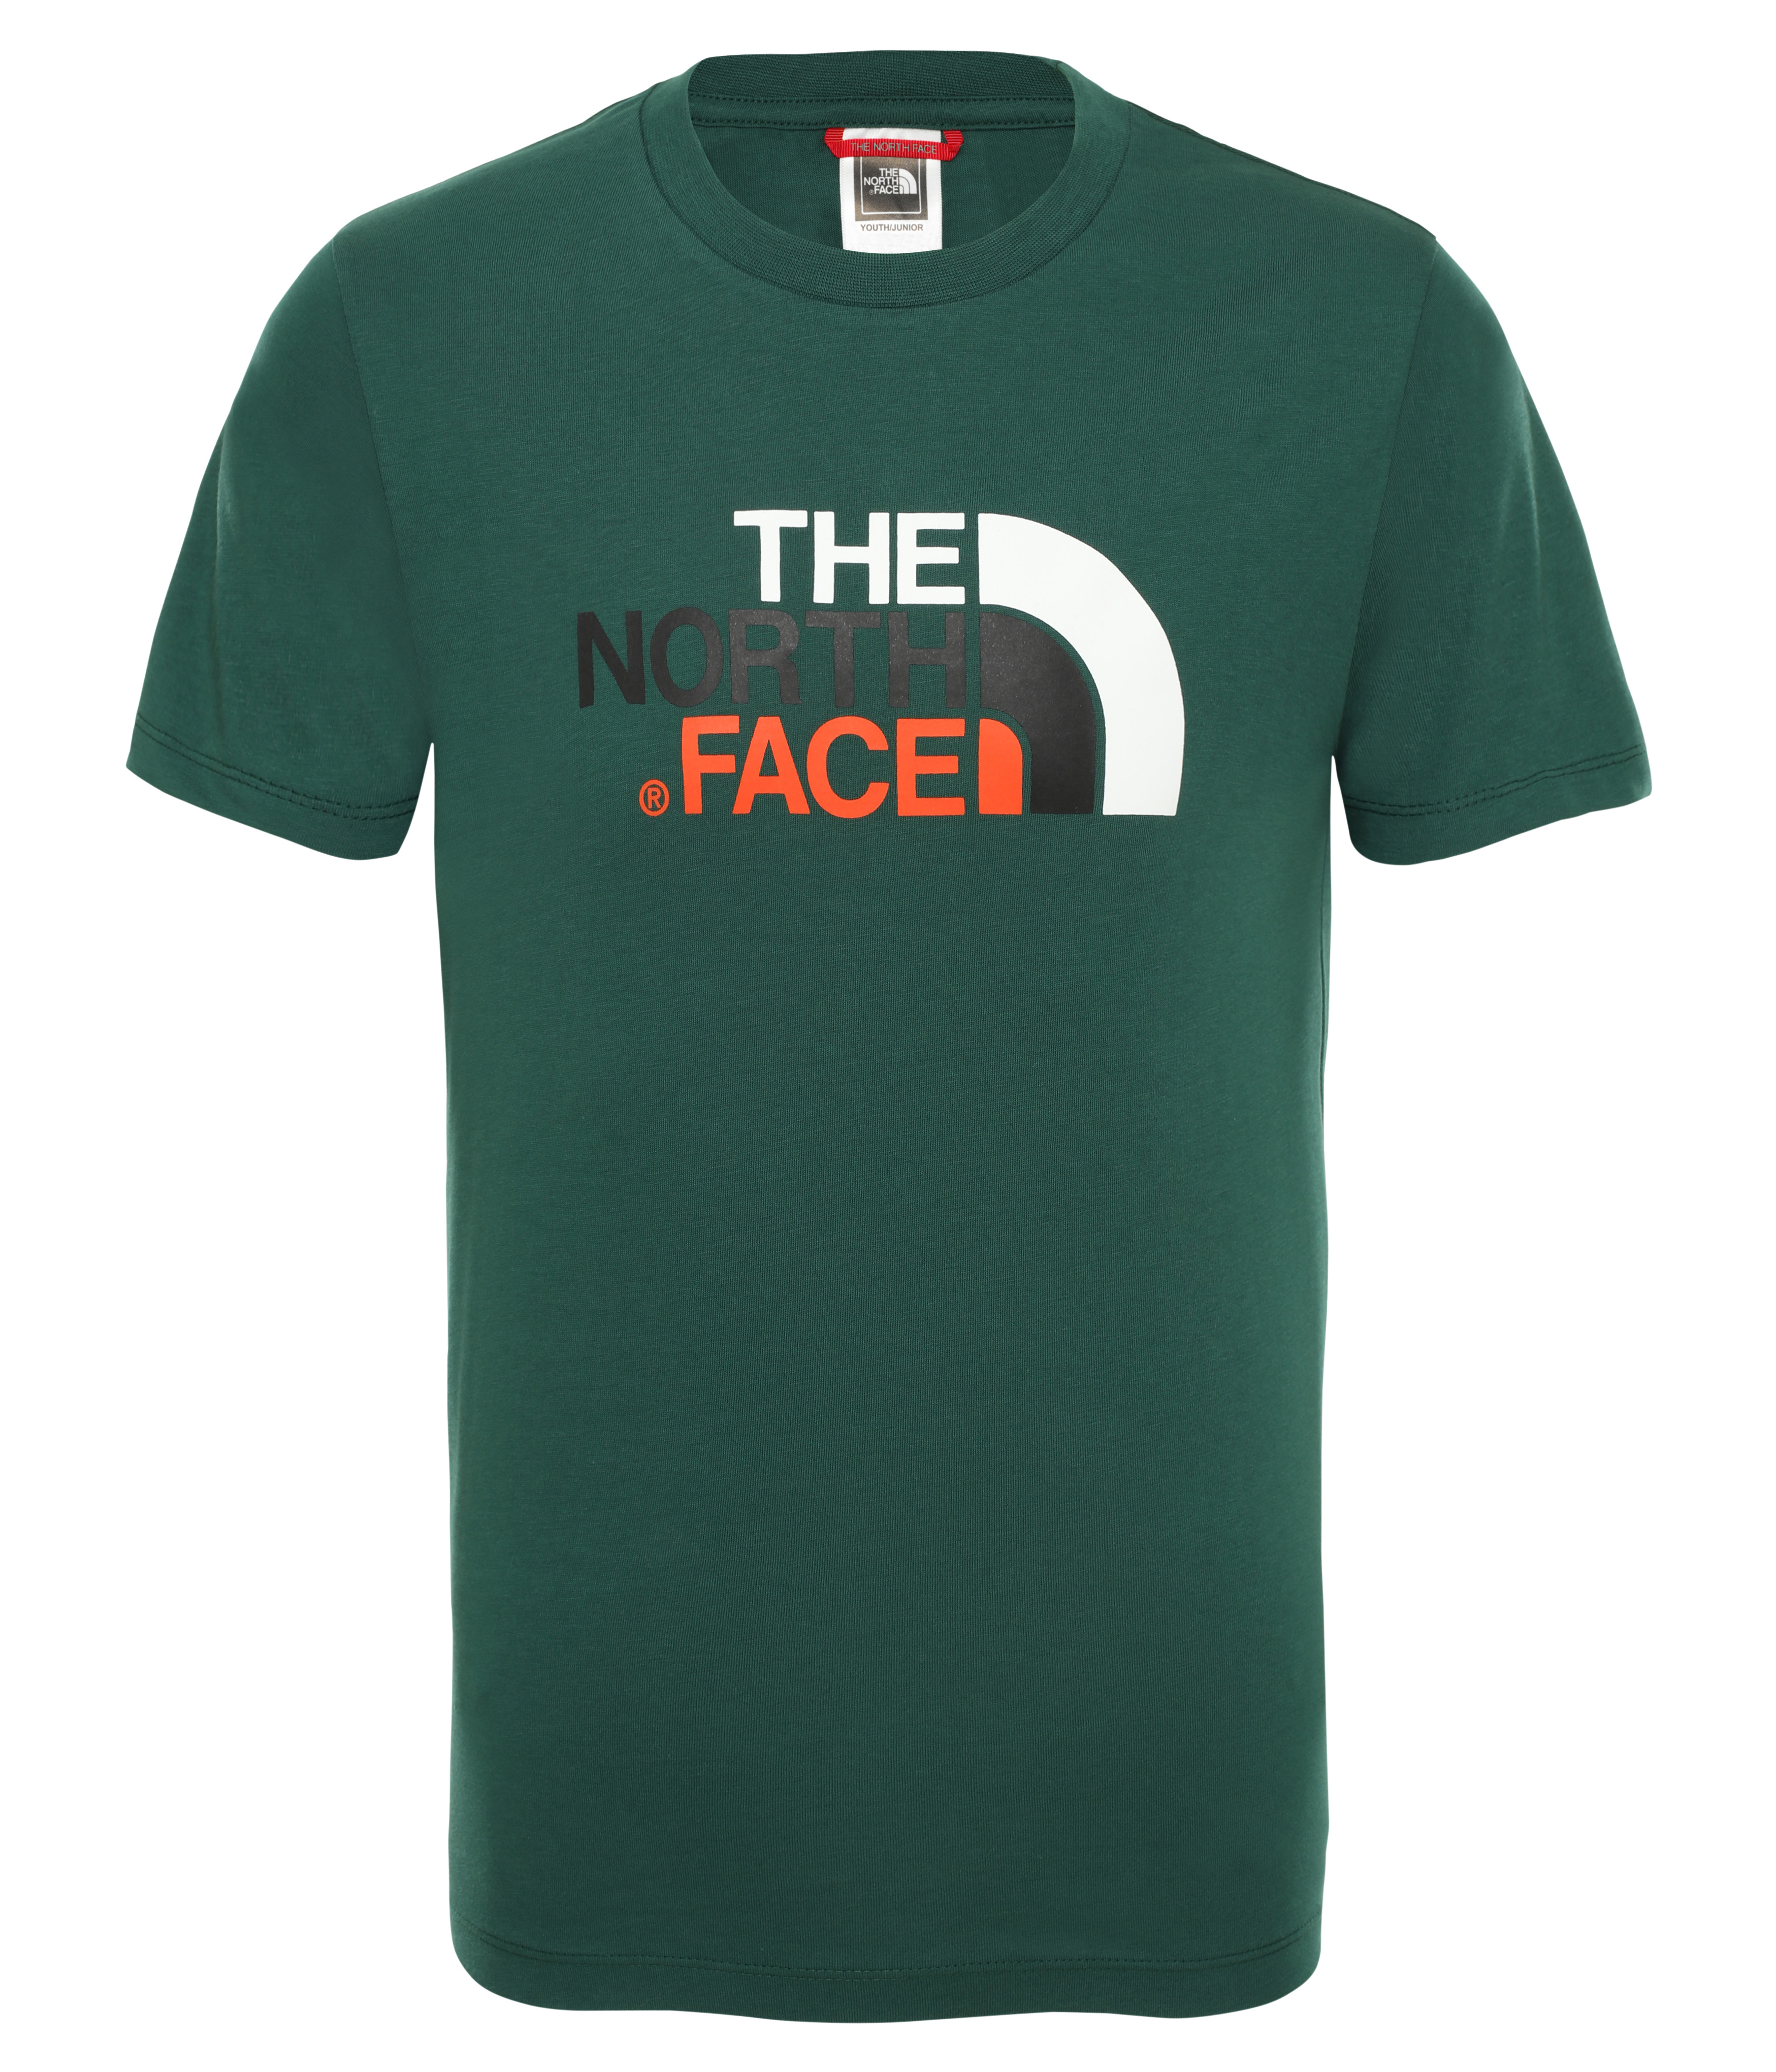 t-shirt m/m the noth face THE NORTH FACE | T-shirt m/m | A3P7N3P